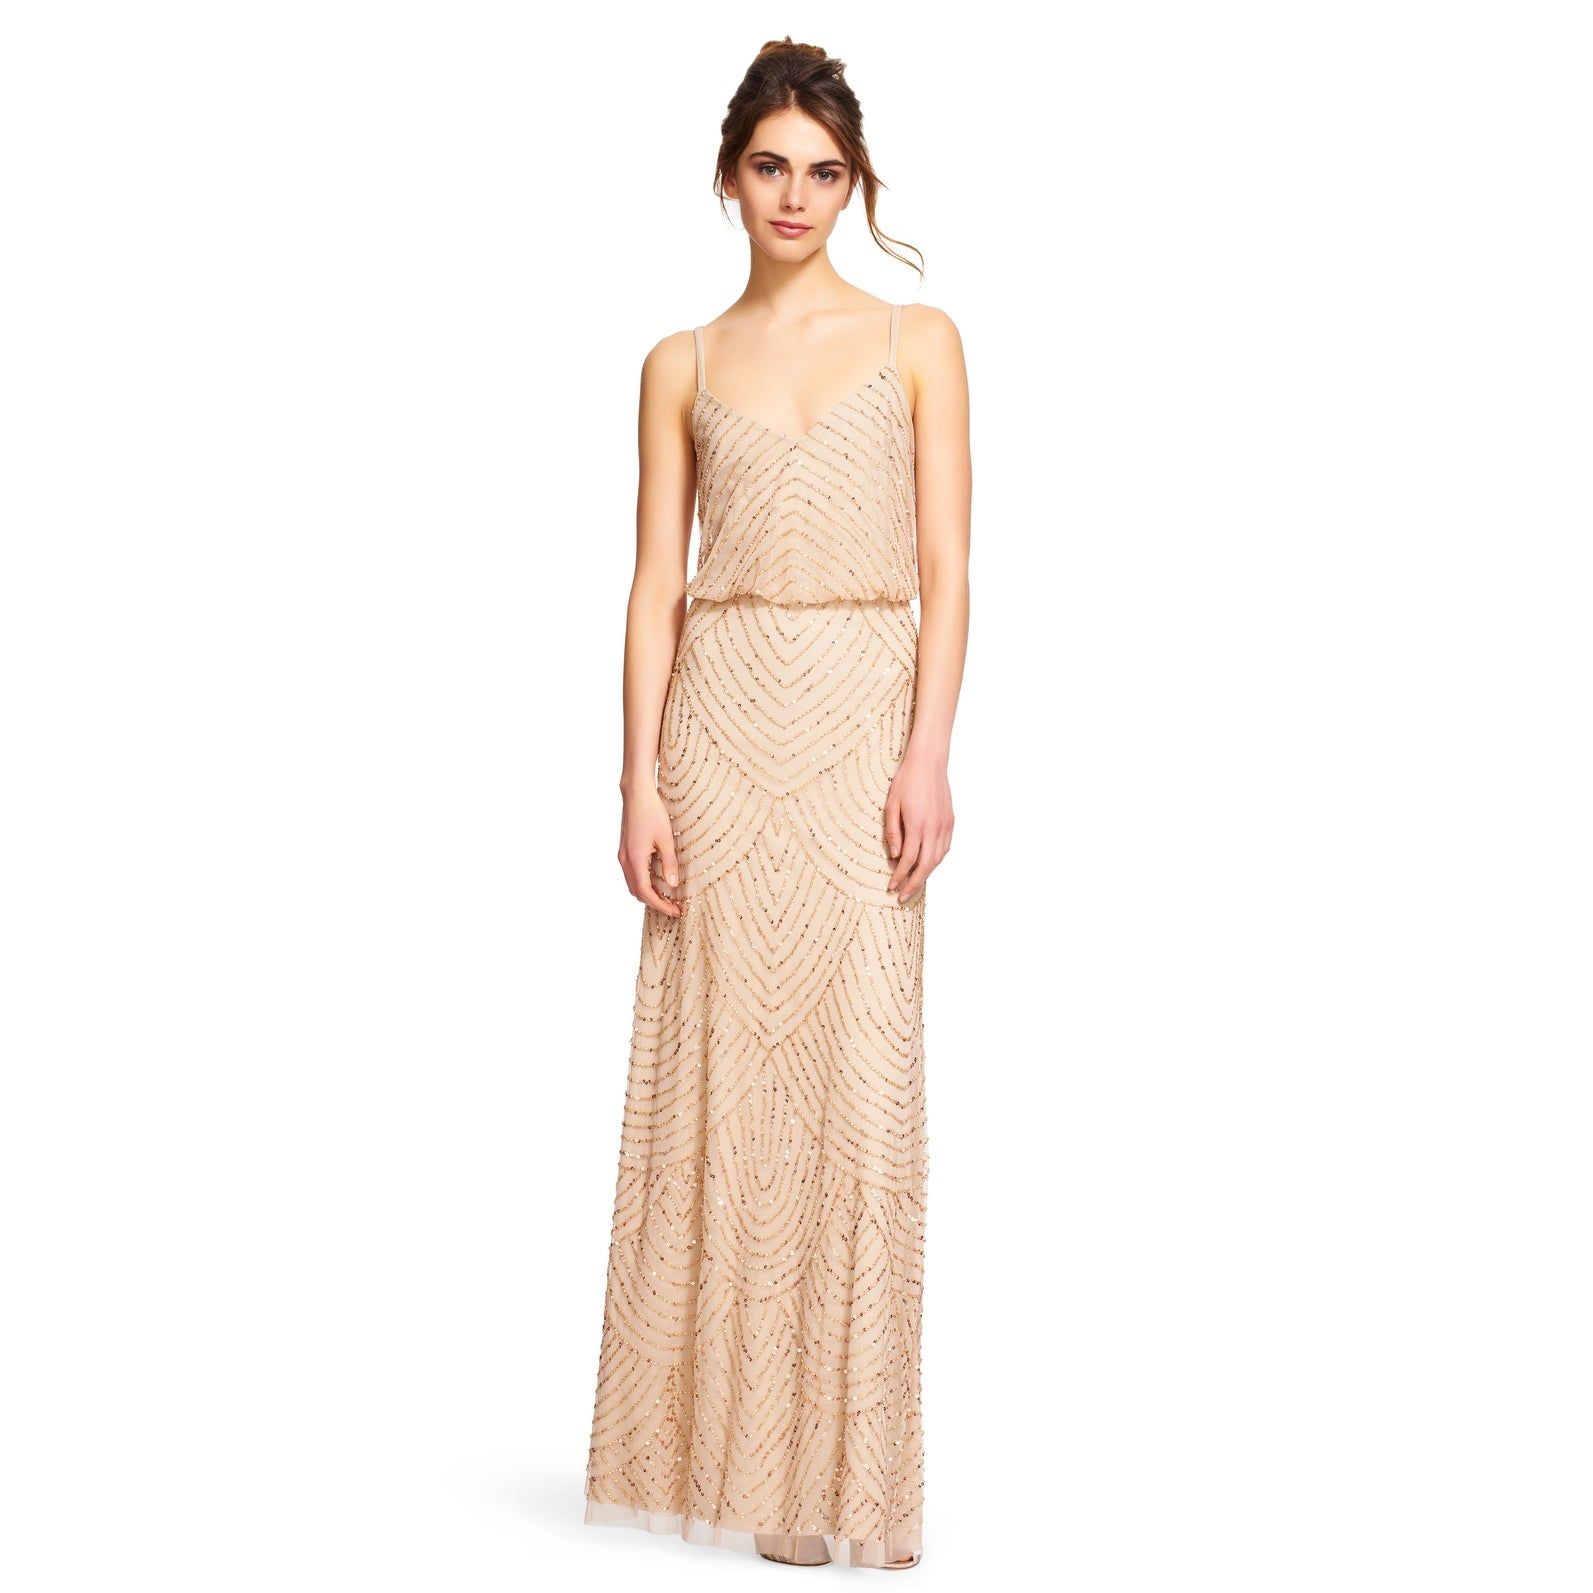 0f7cae4784 Shop Adrianna Papell Women s Long Beaded Blouson Gown - Free ...